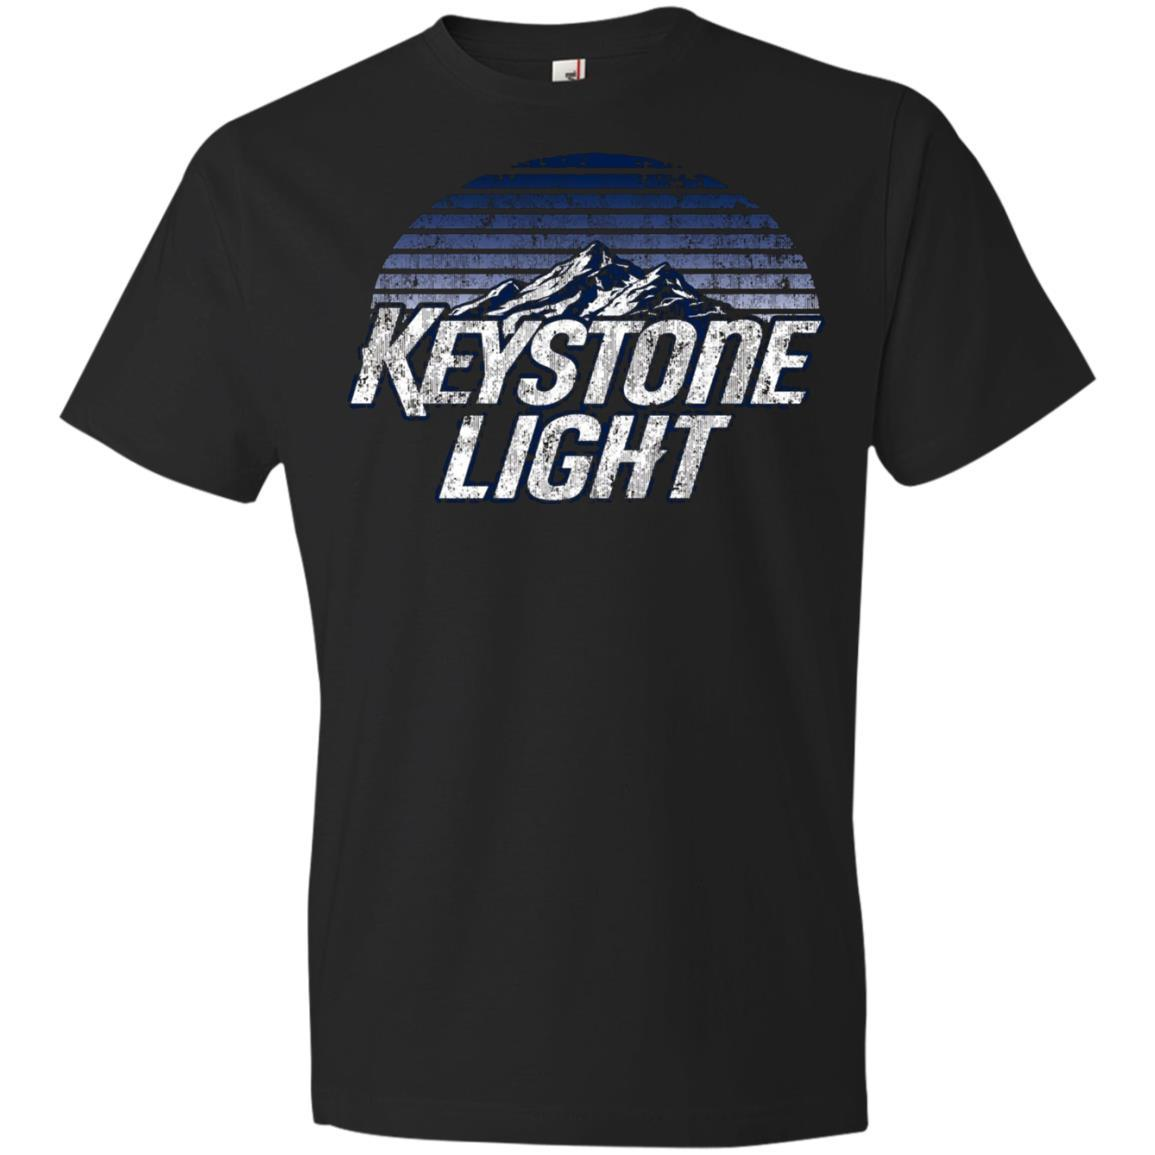 Keystone Light Beer Classic Look - Anvil Lightweight T-Shirt Black / 3XL